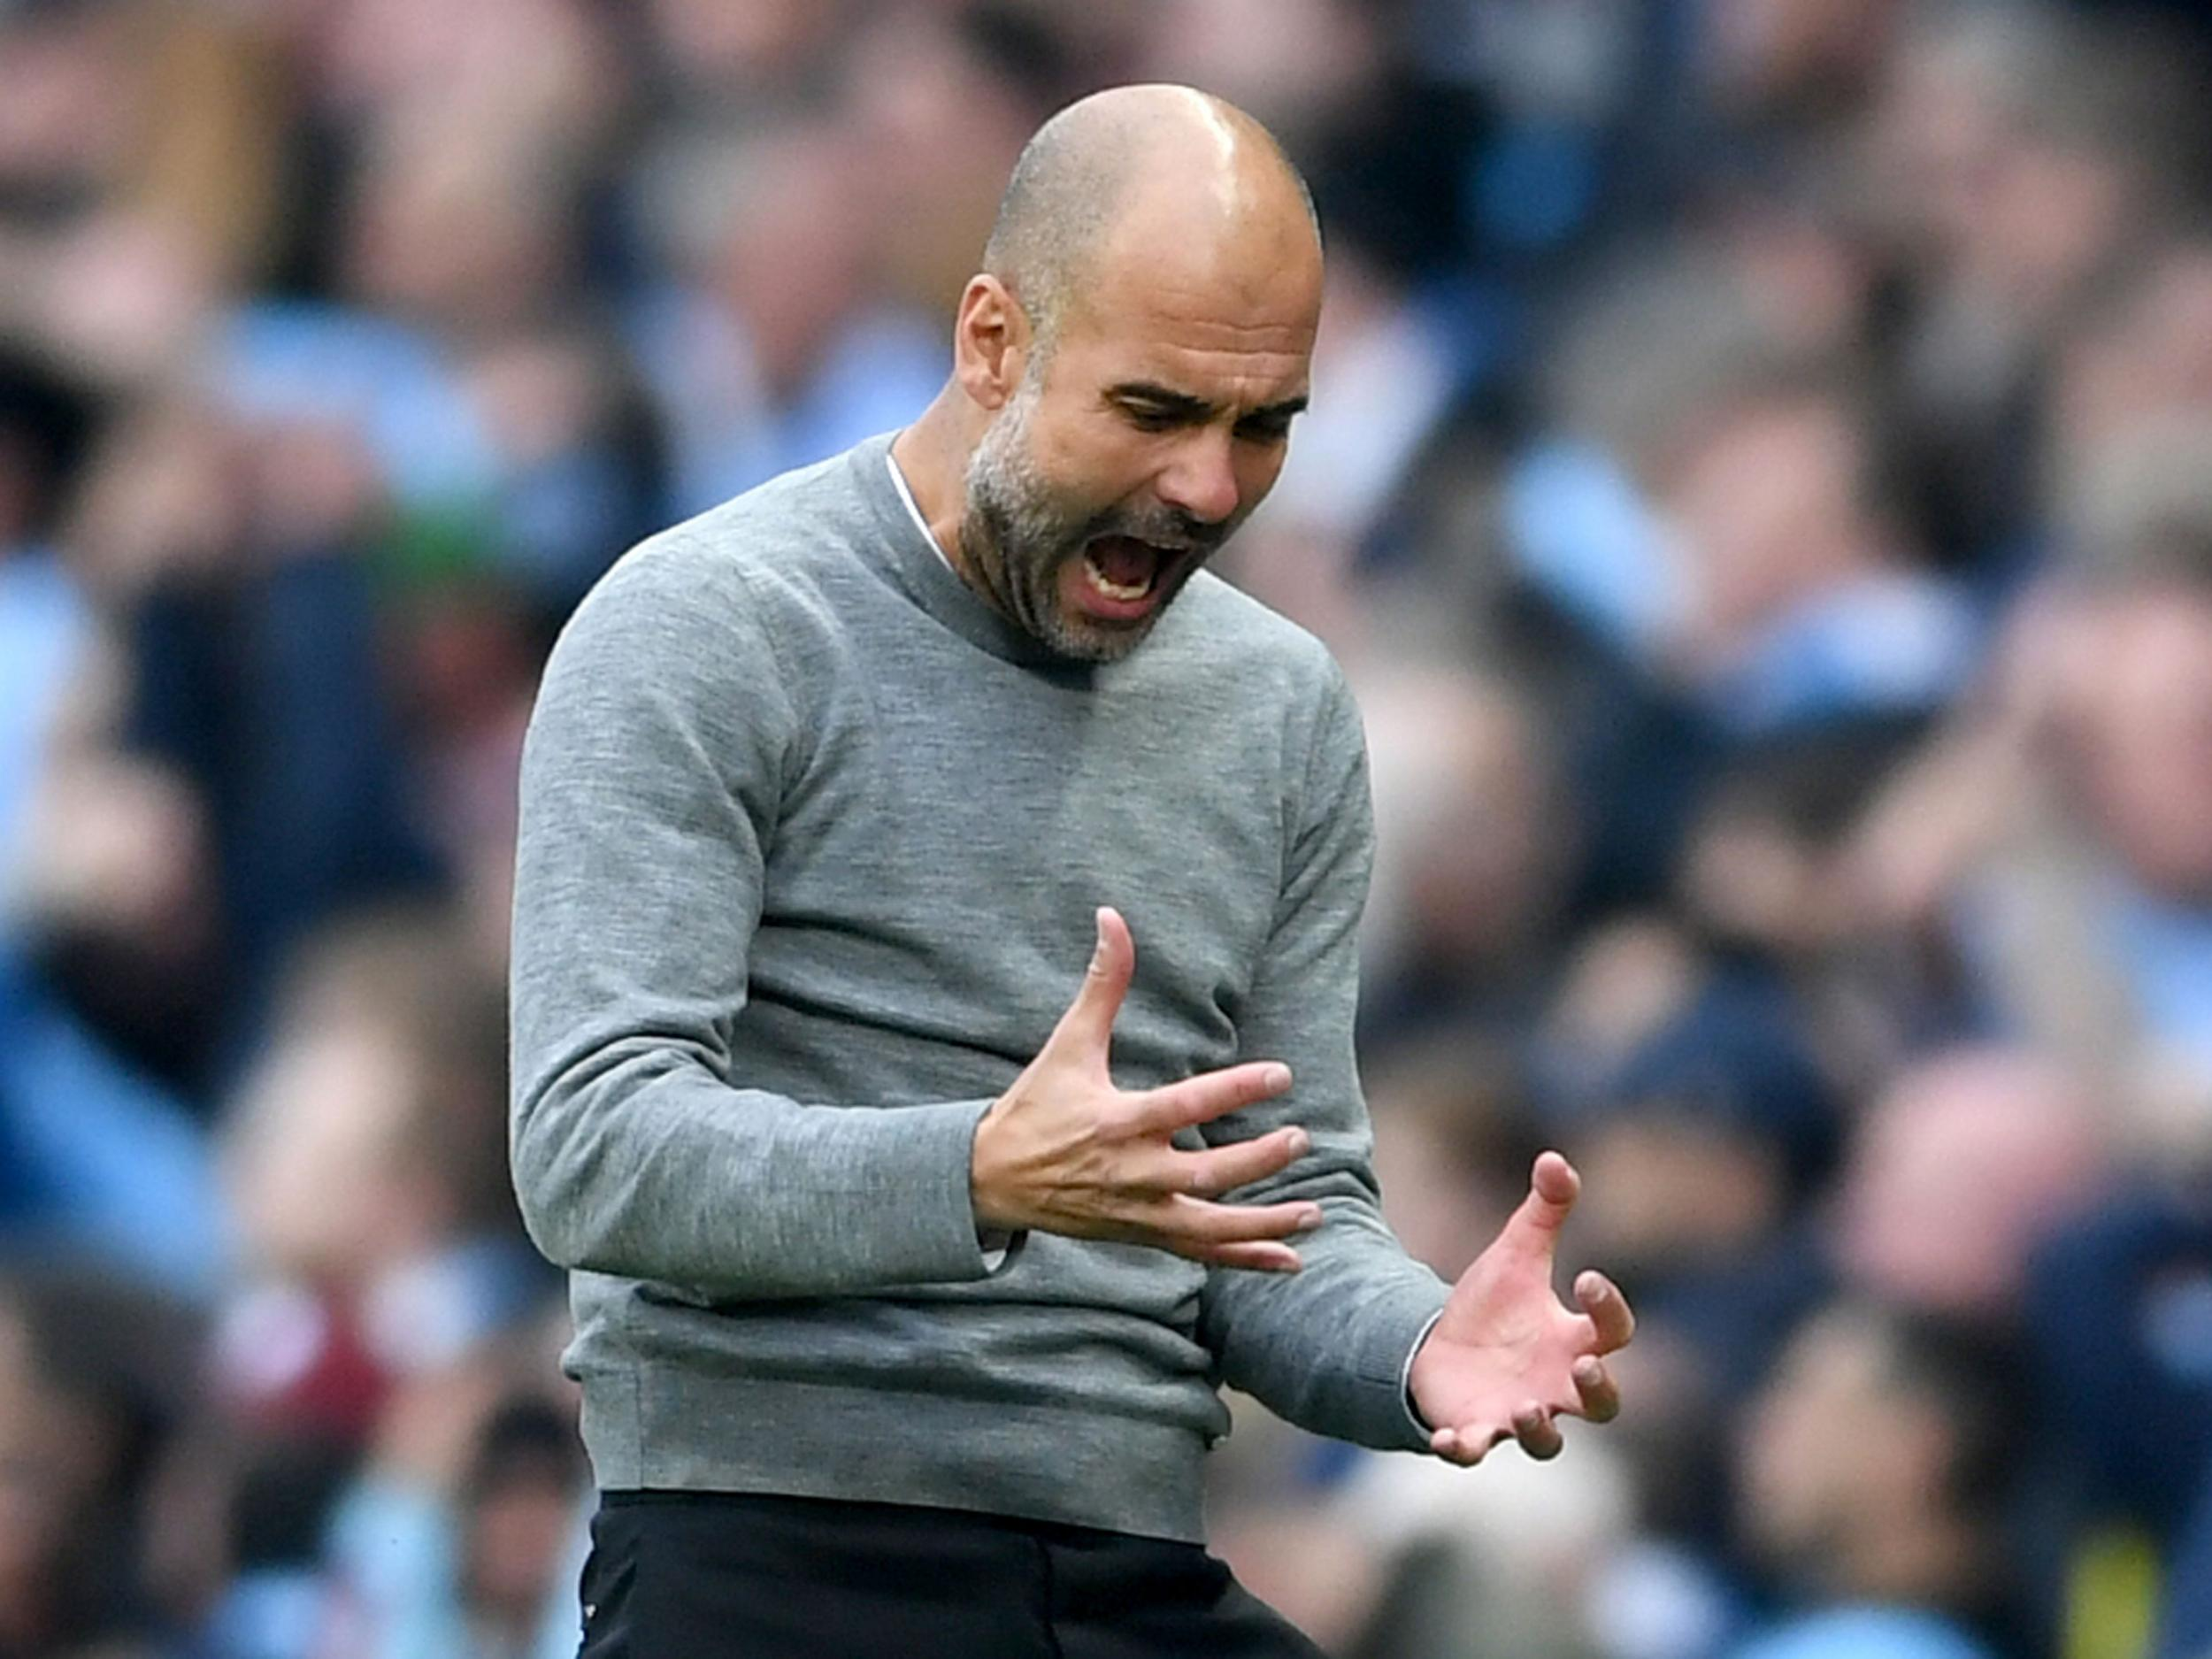 Pep Guardiola disappointed but hopes Manchester City's derby defeat adds sense of perspective